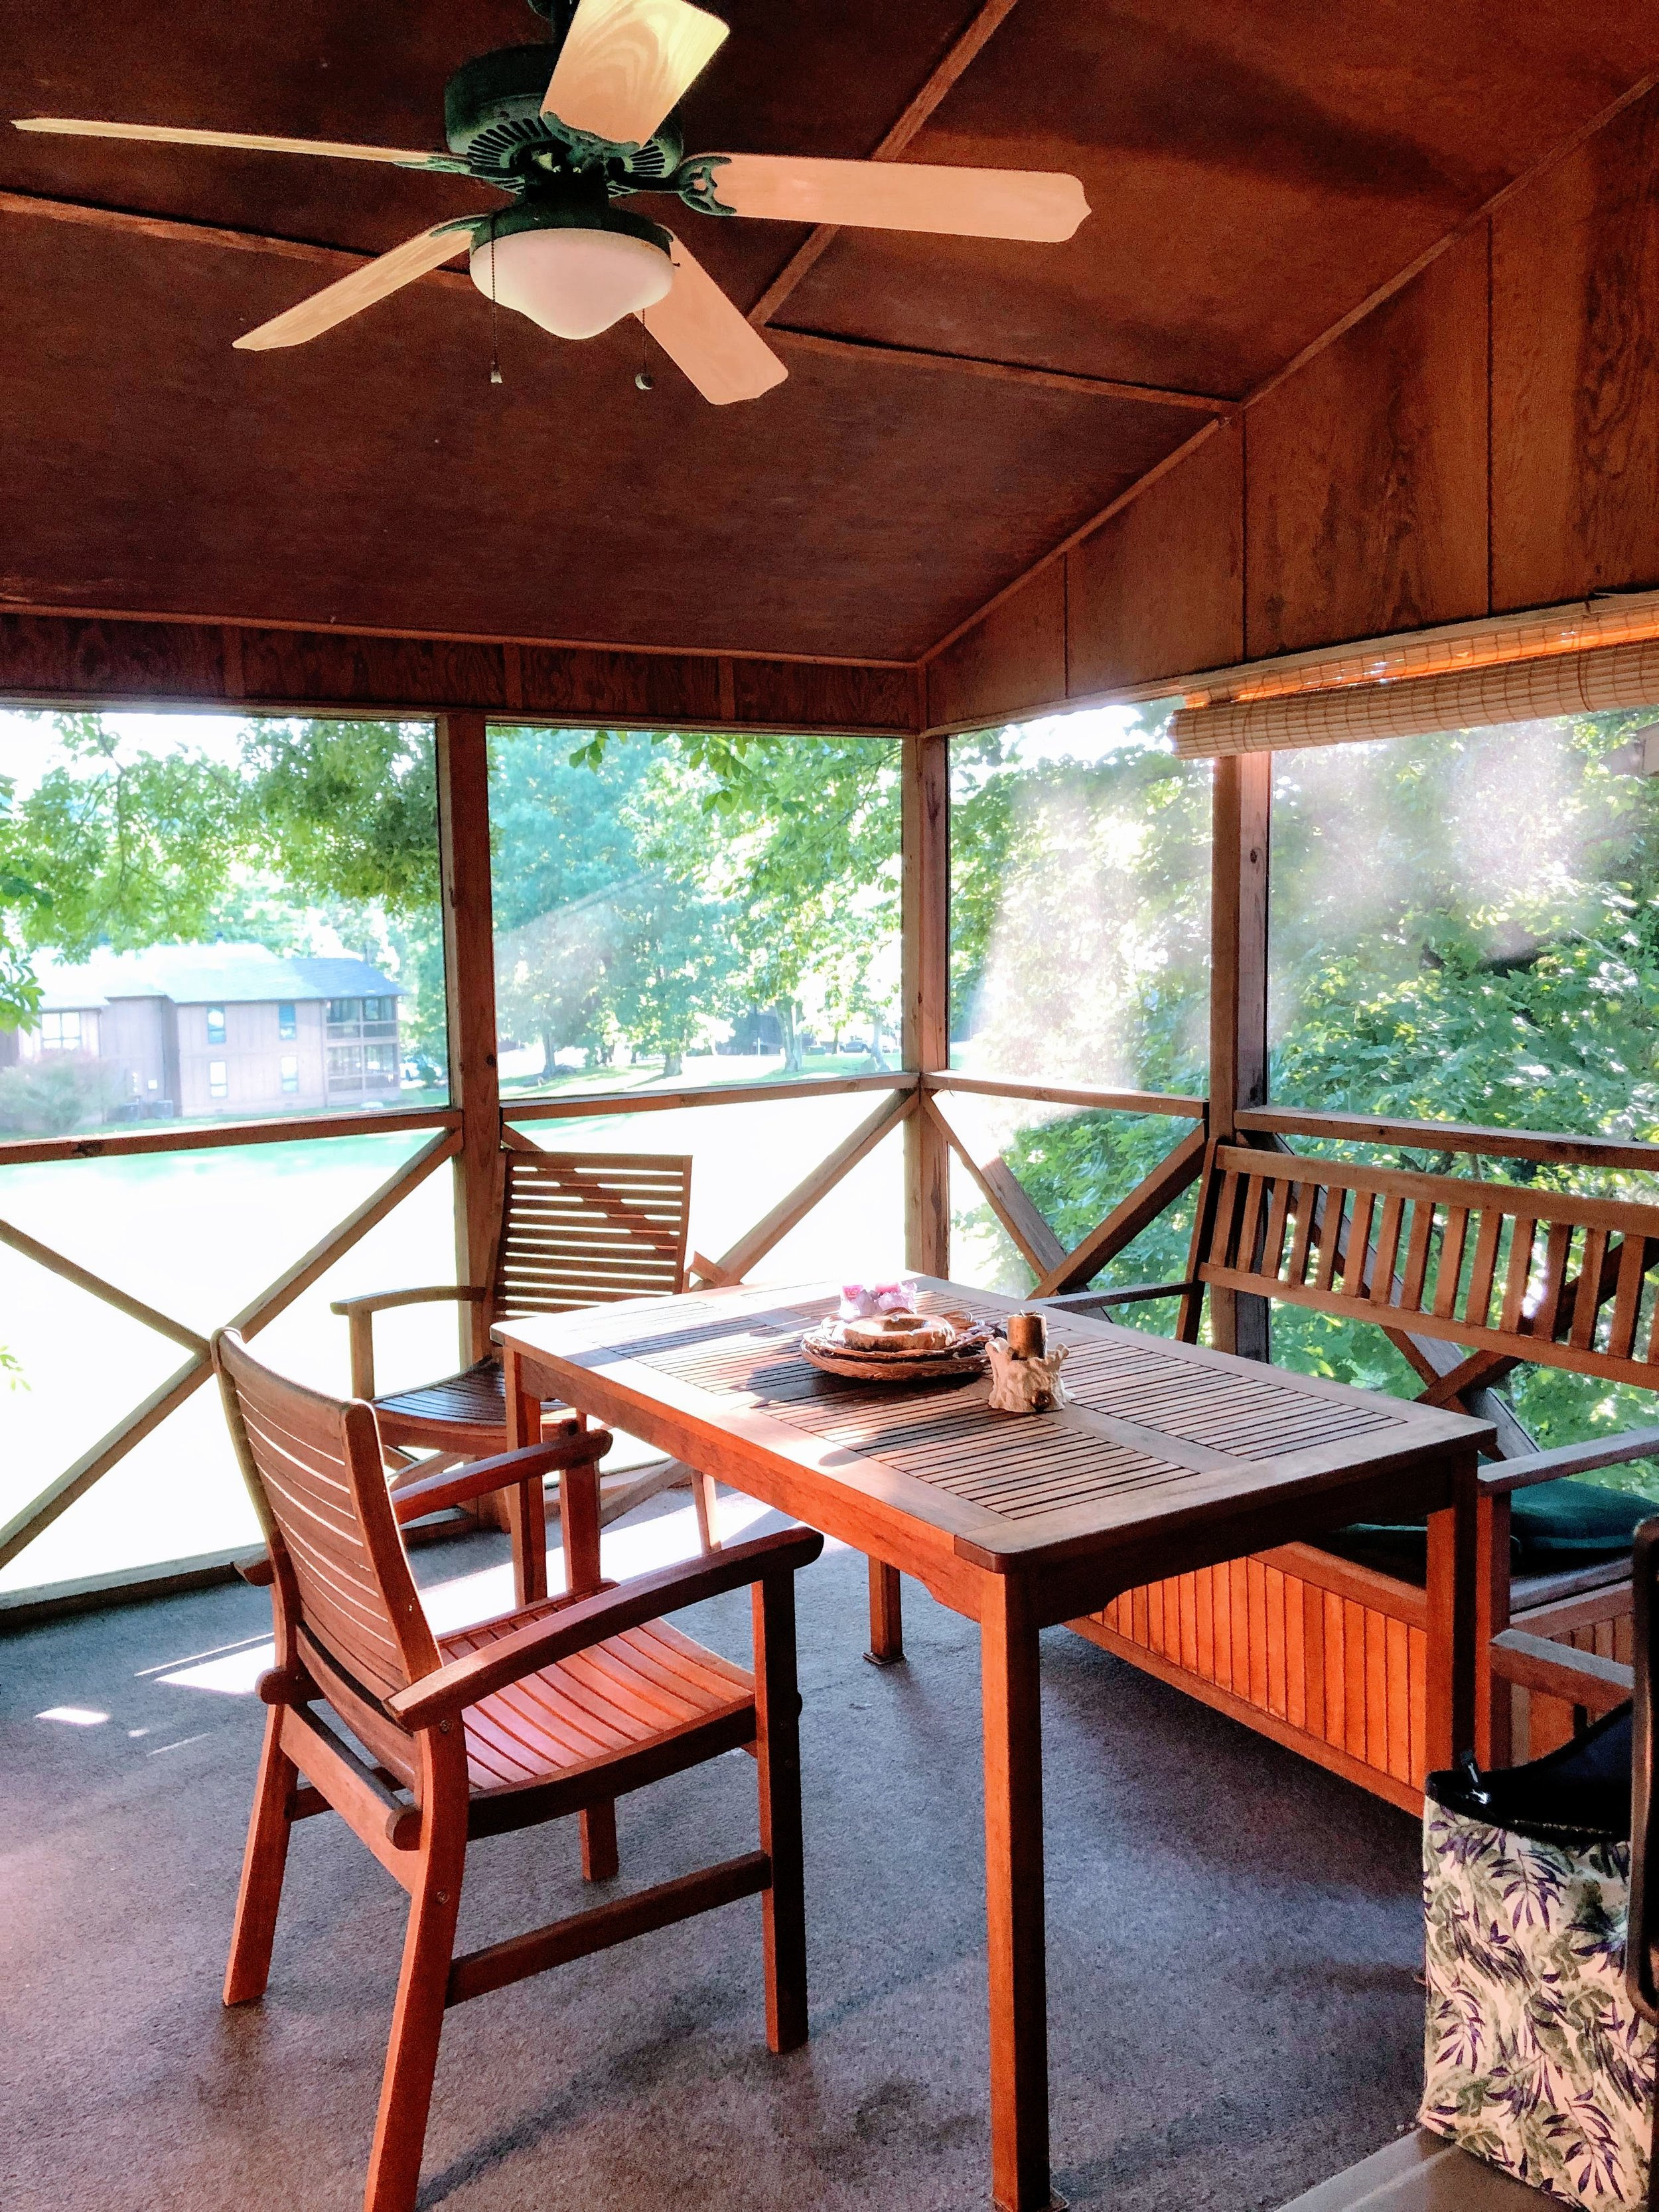 Most rental units have screened in patios, Woodson Bend Resort